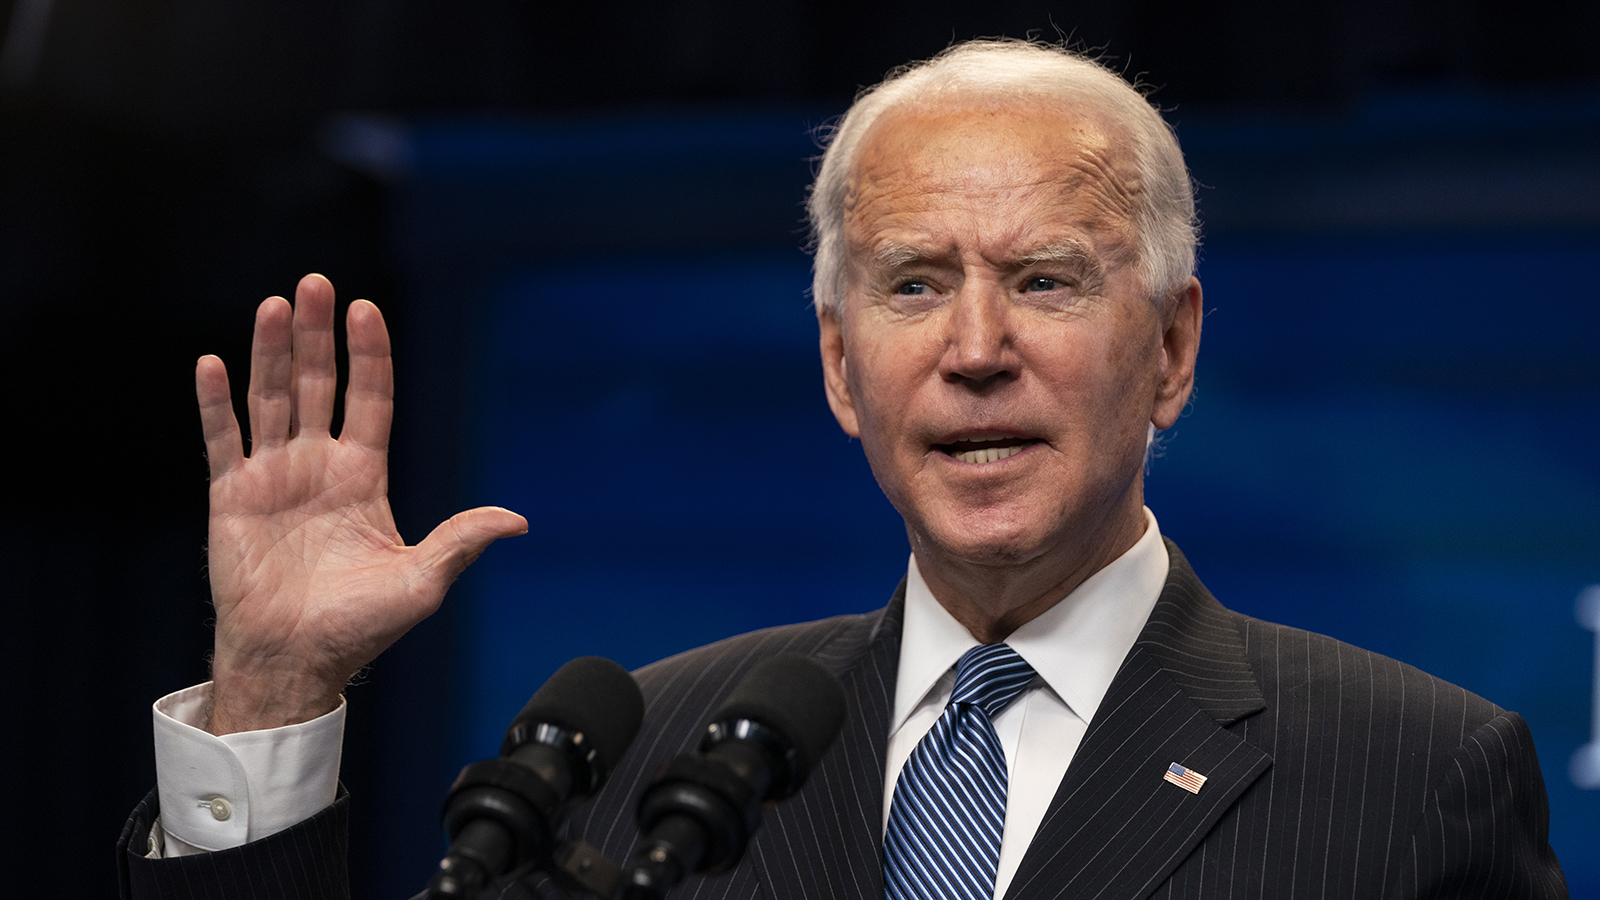 President Joe Biden answers questions from reporters in the South Court Auditorium on the White House complex on Monday, January 25, in Washington.